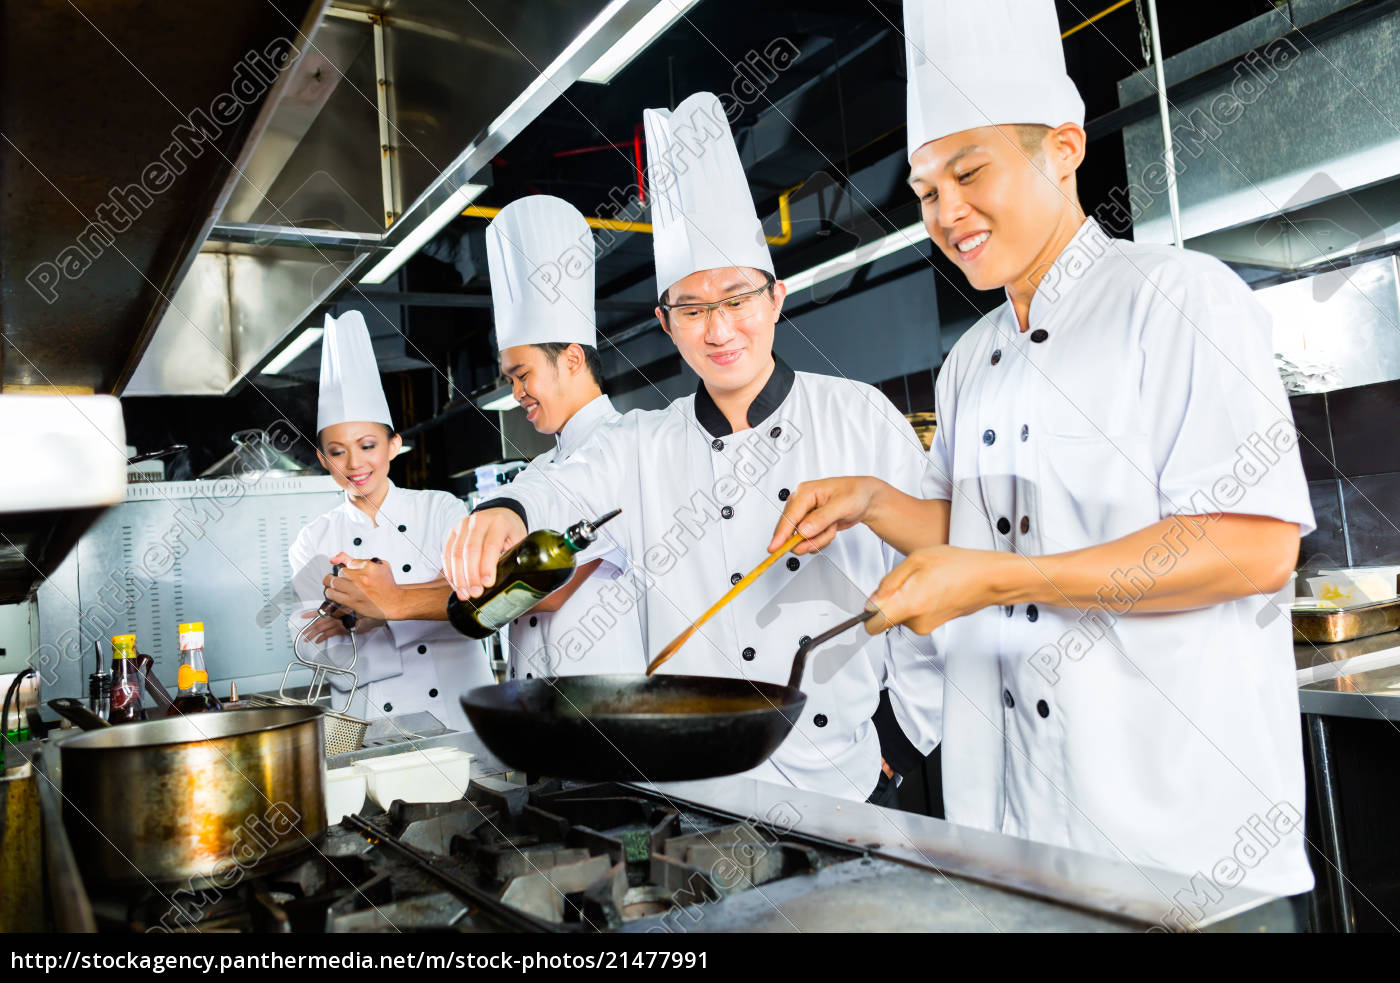 Asian Chefs In Restaurant Kitchen Cooking Stock Photo 21477991 Panthermedia Stock Agency